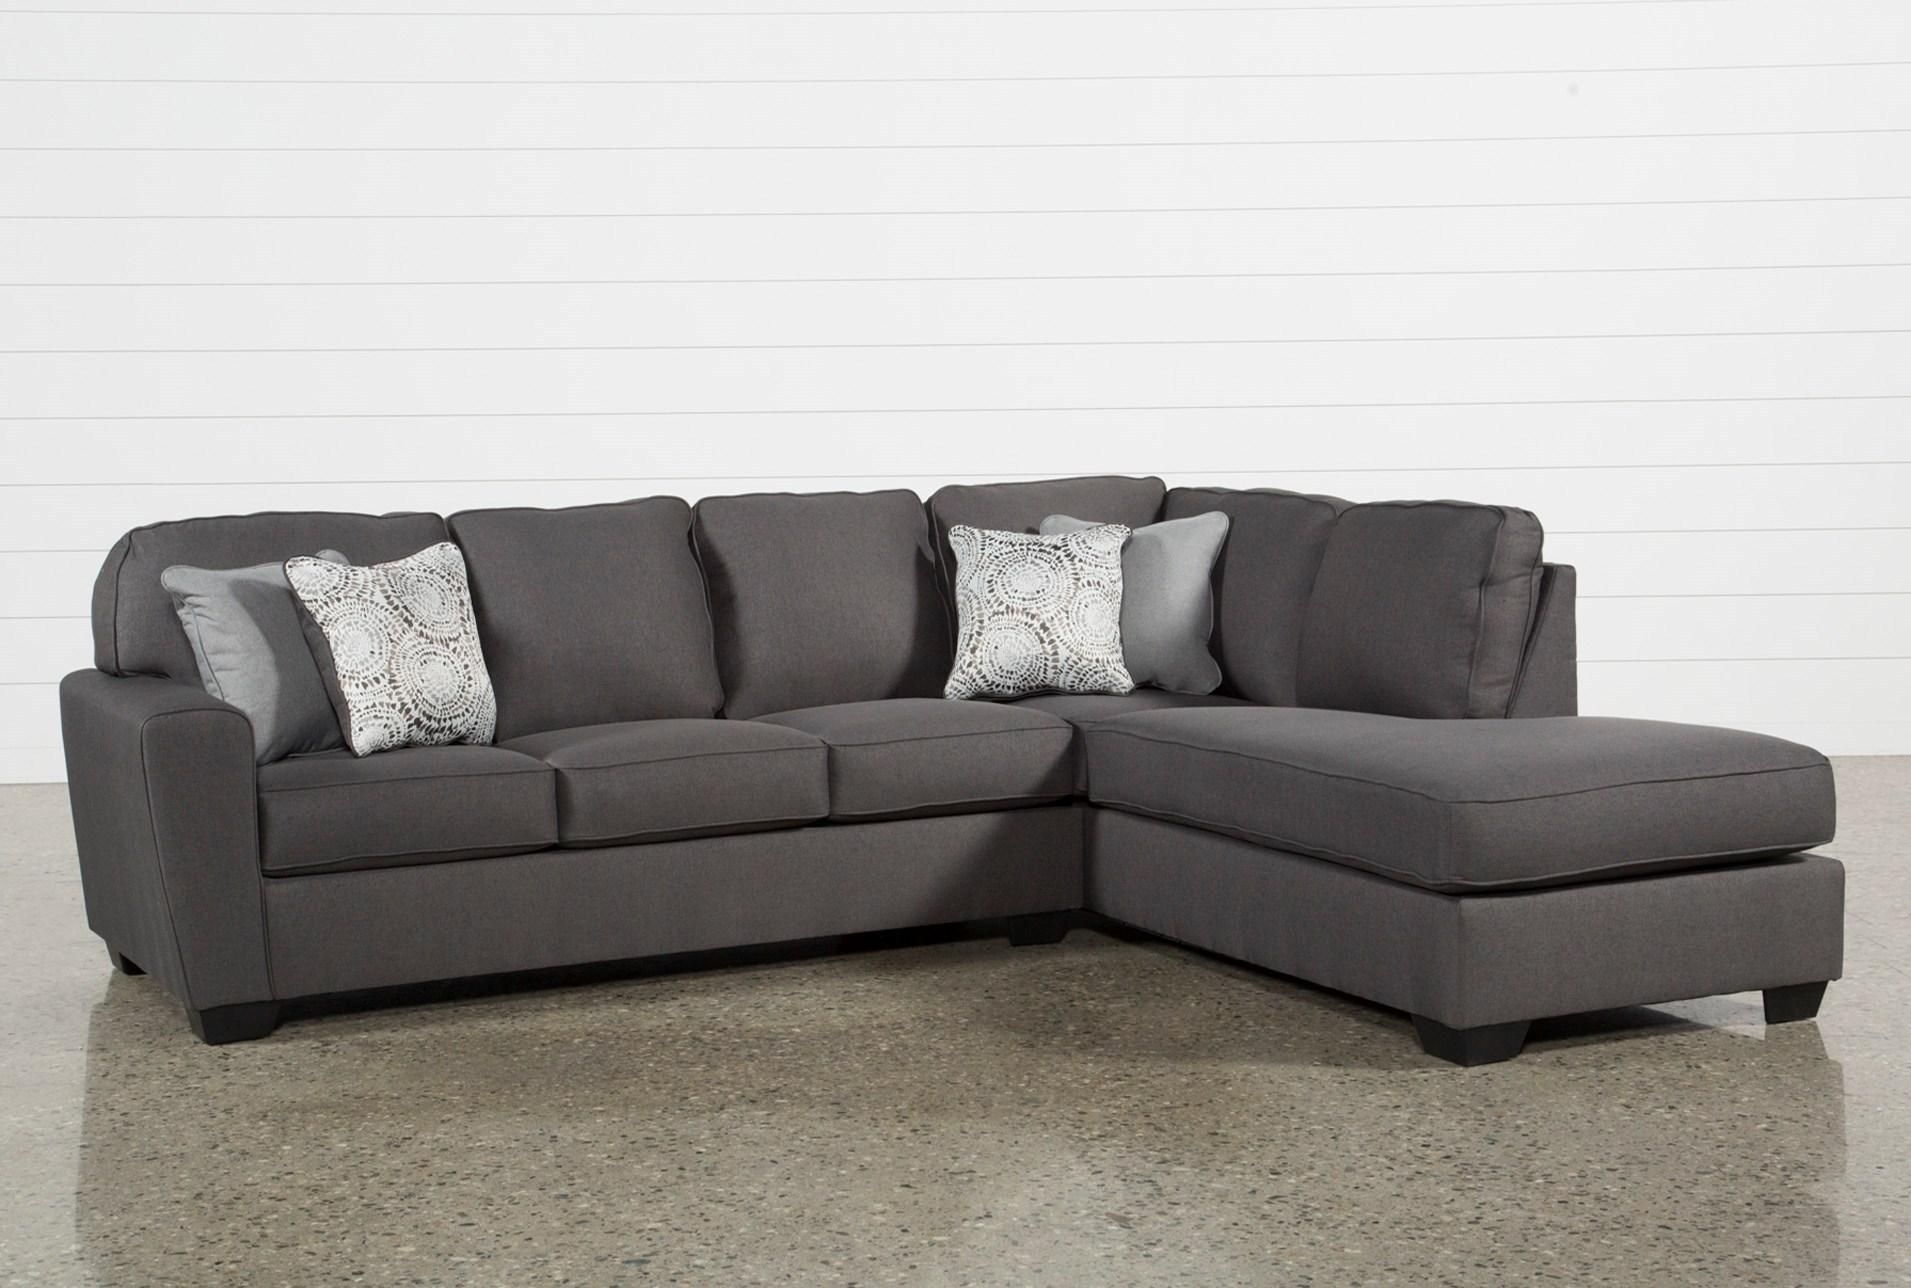 Mcdade Graphite 2 Piece Sectional W/raf Chaise | Livingroom regarding Arrowmask 2 Piece Sectionals With Raf Chaise (Image 24 of 30)